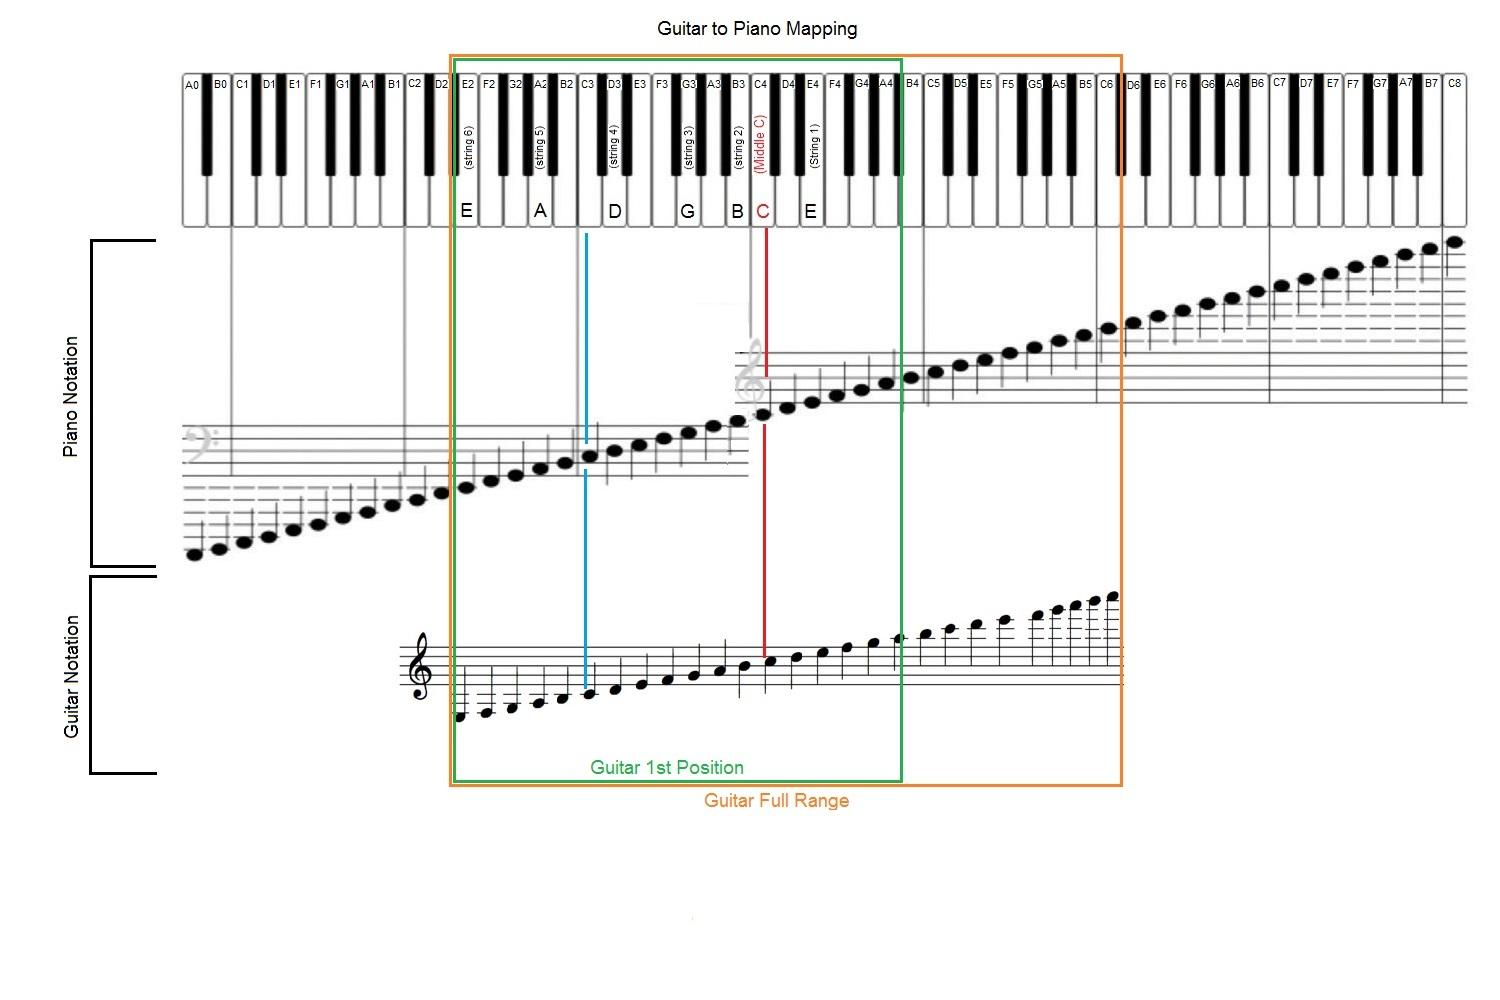 88 key piano keyboard diagram a of microscope parts where on earth in the middle c guitar